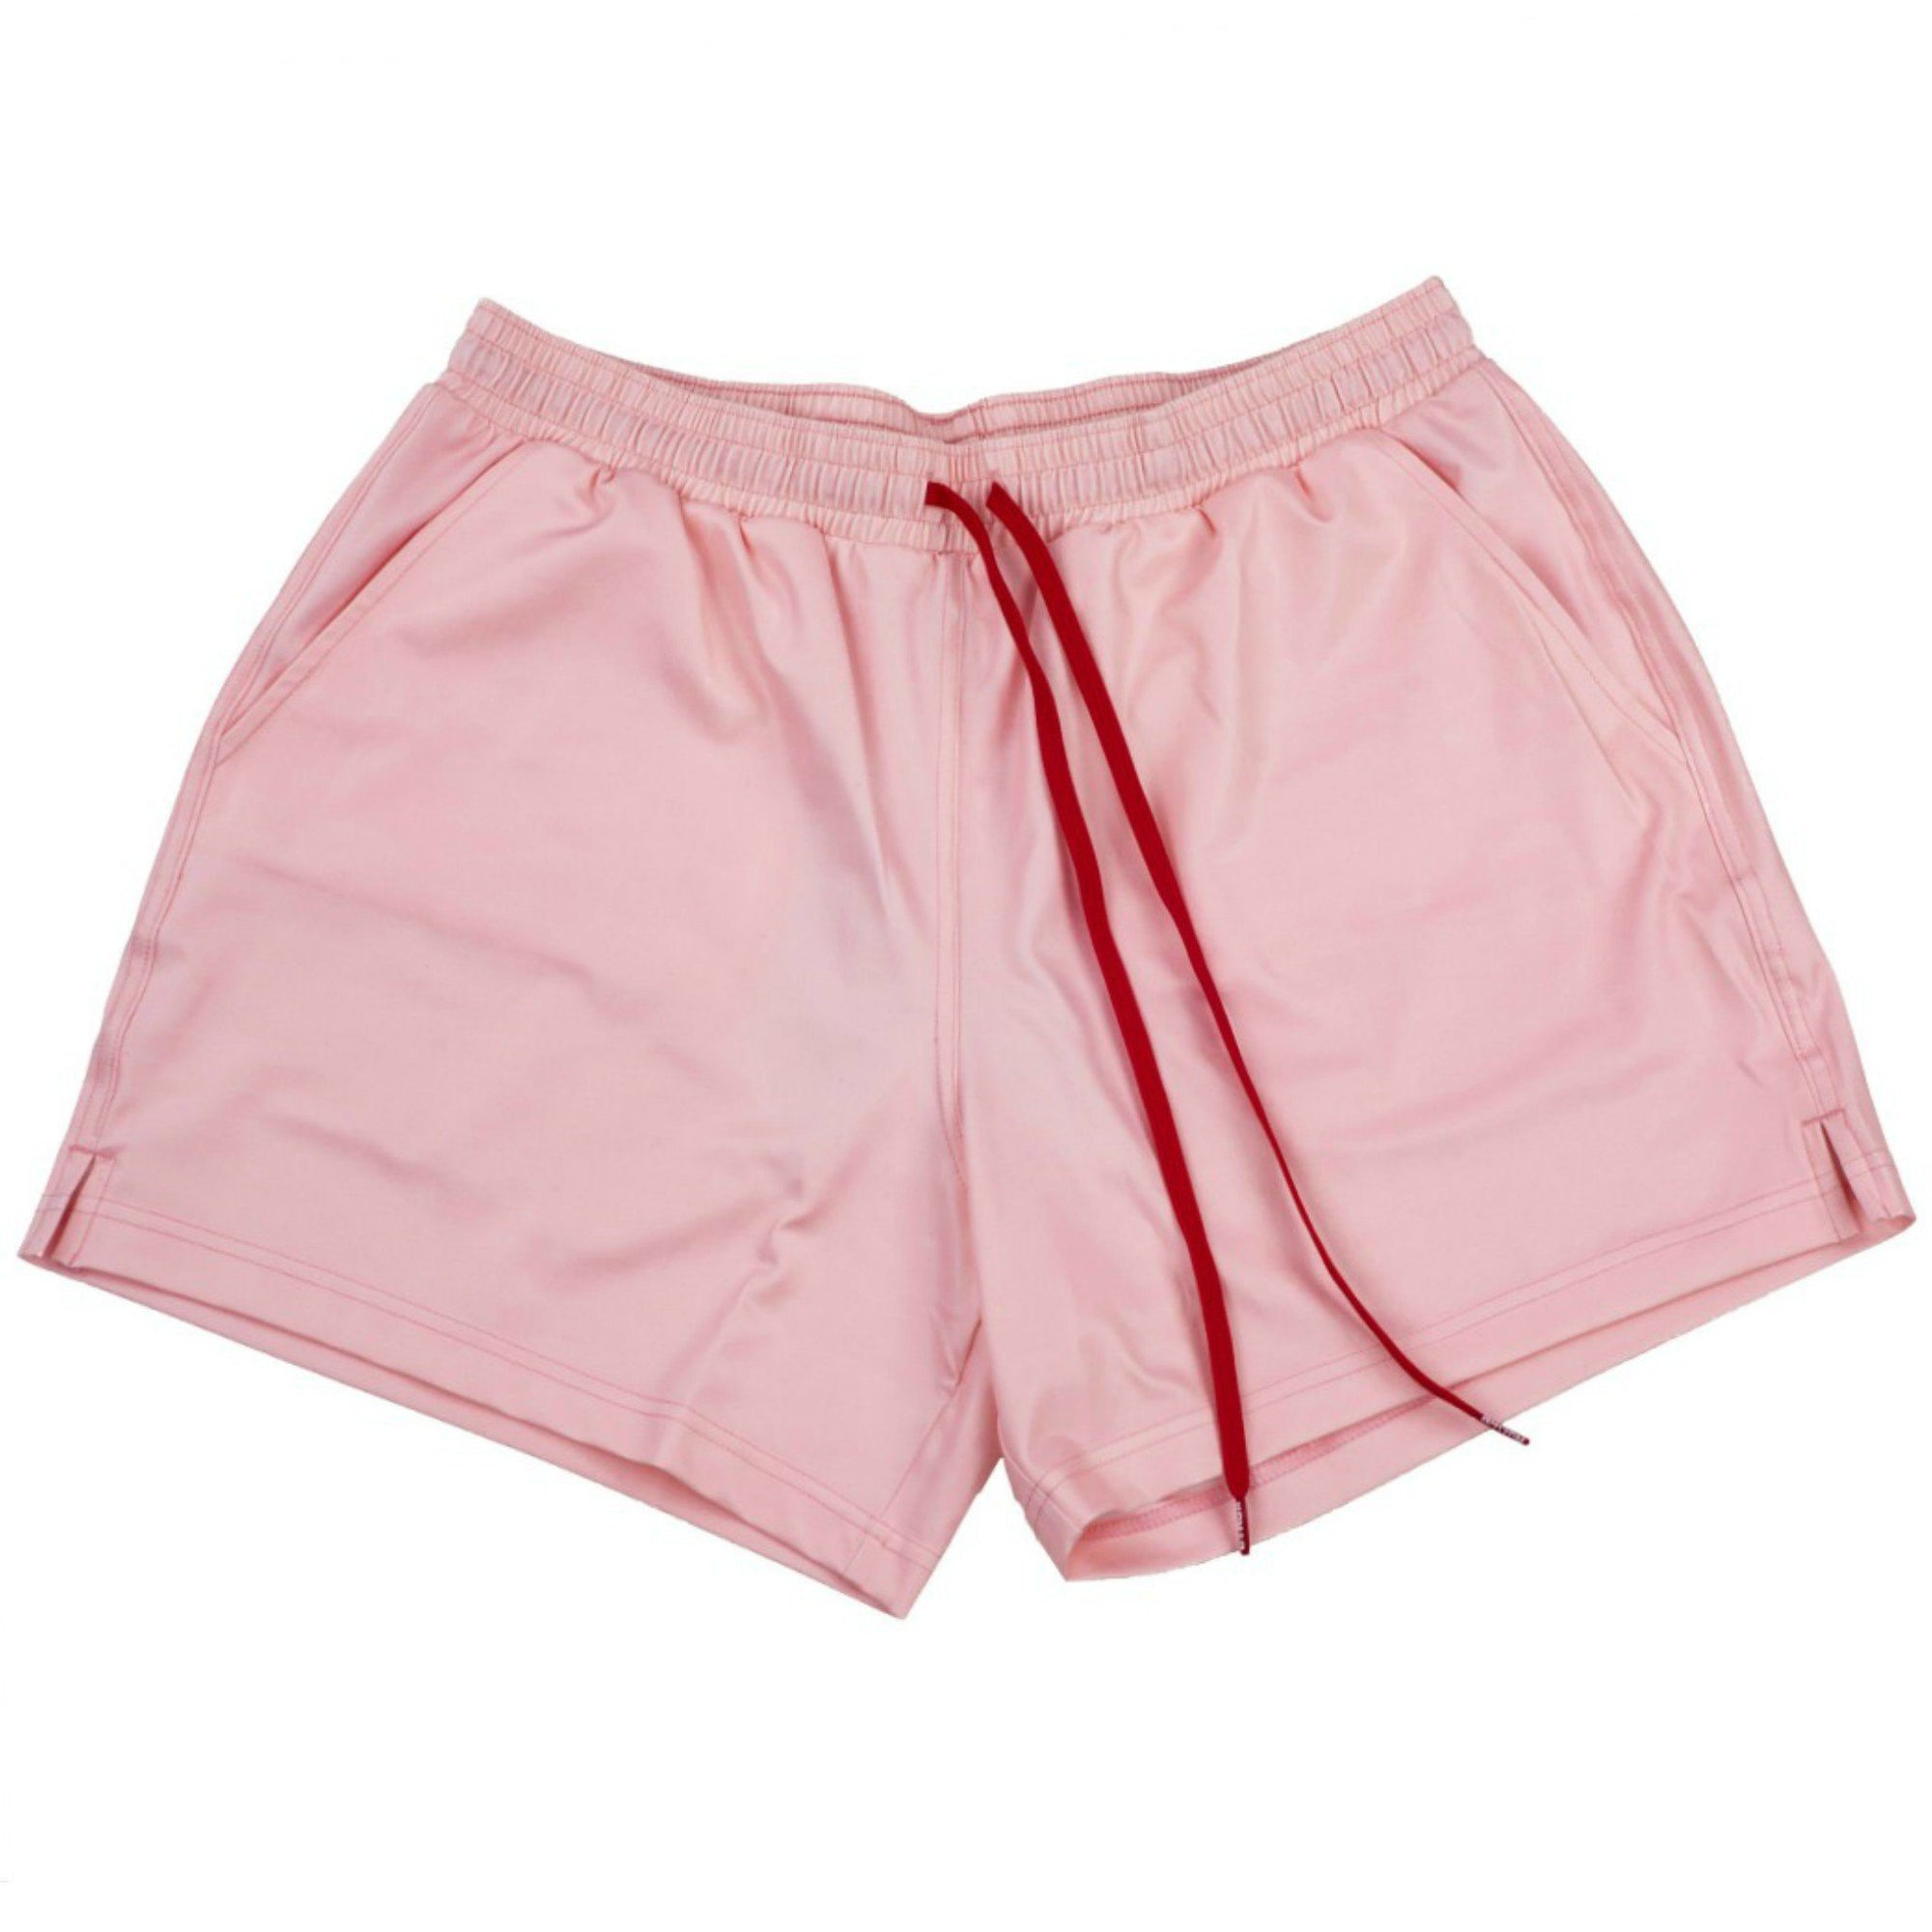 Swim Trunks - Coral